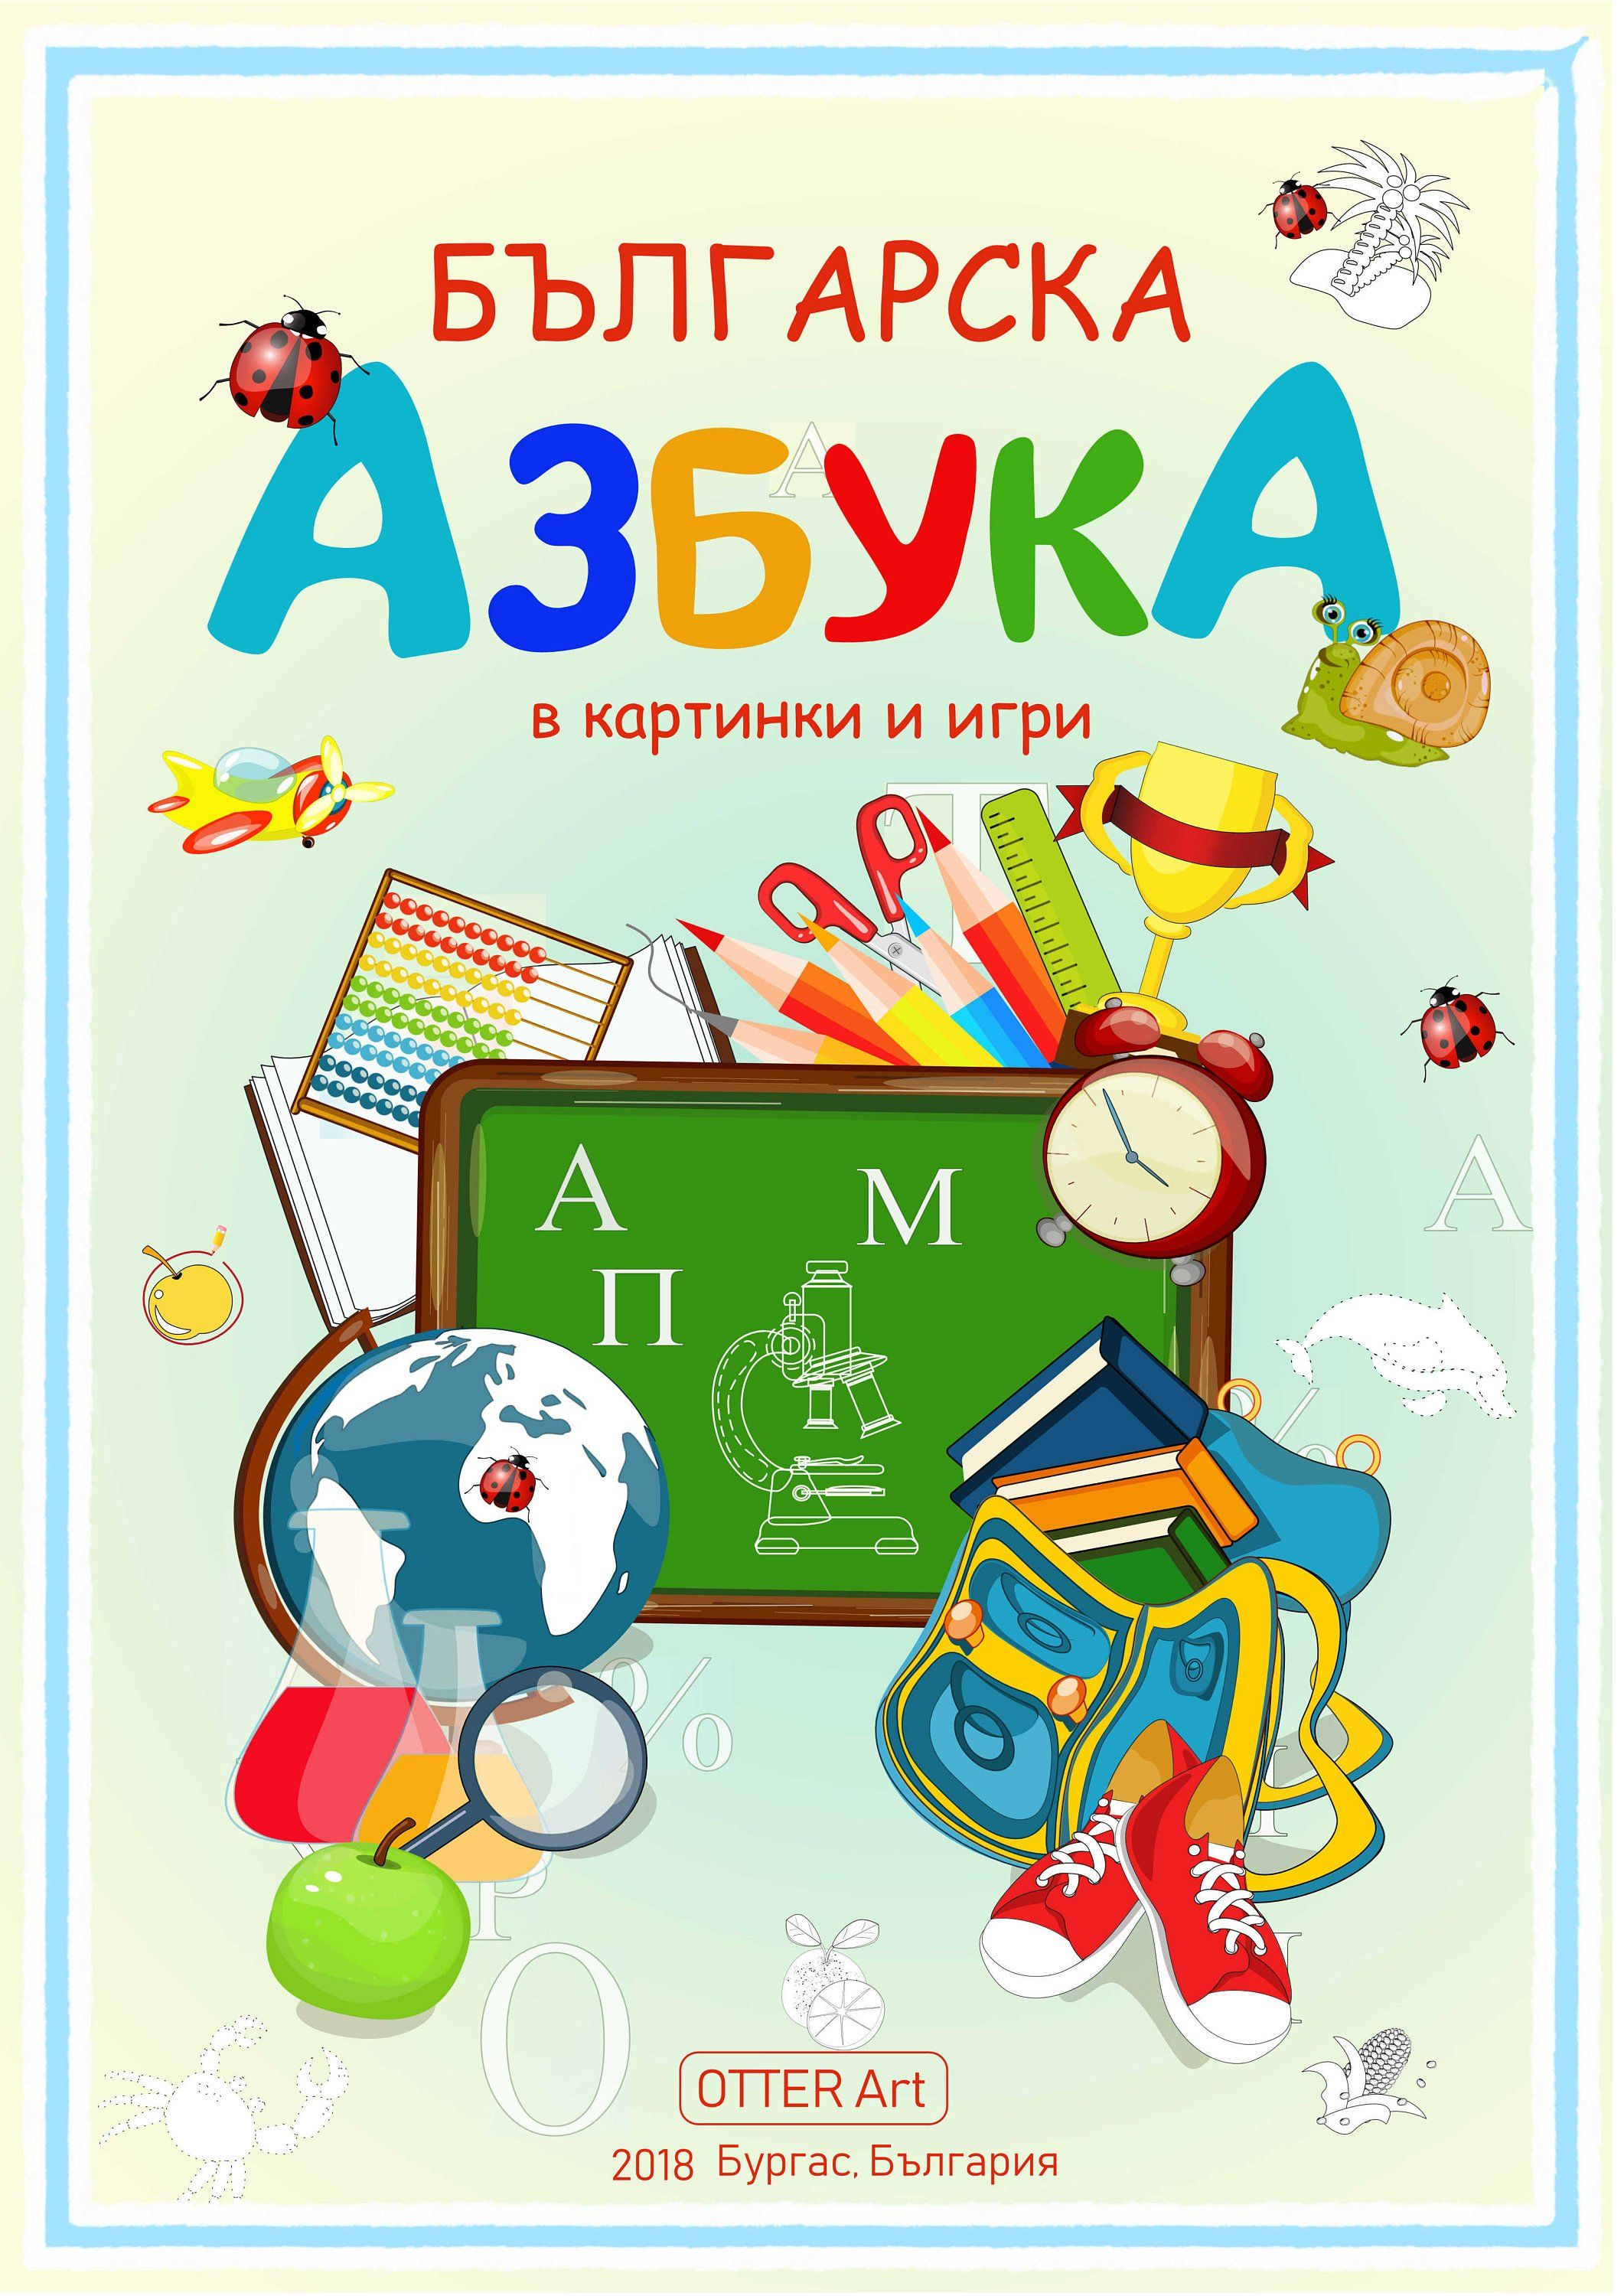 Bulgarian Alphabet Cutouts Color Illustrations And Fun